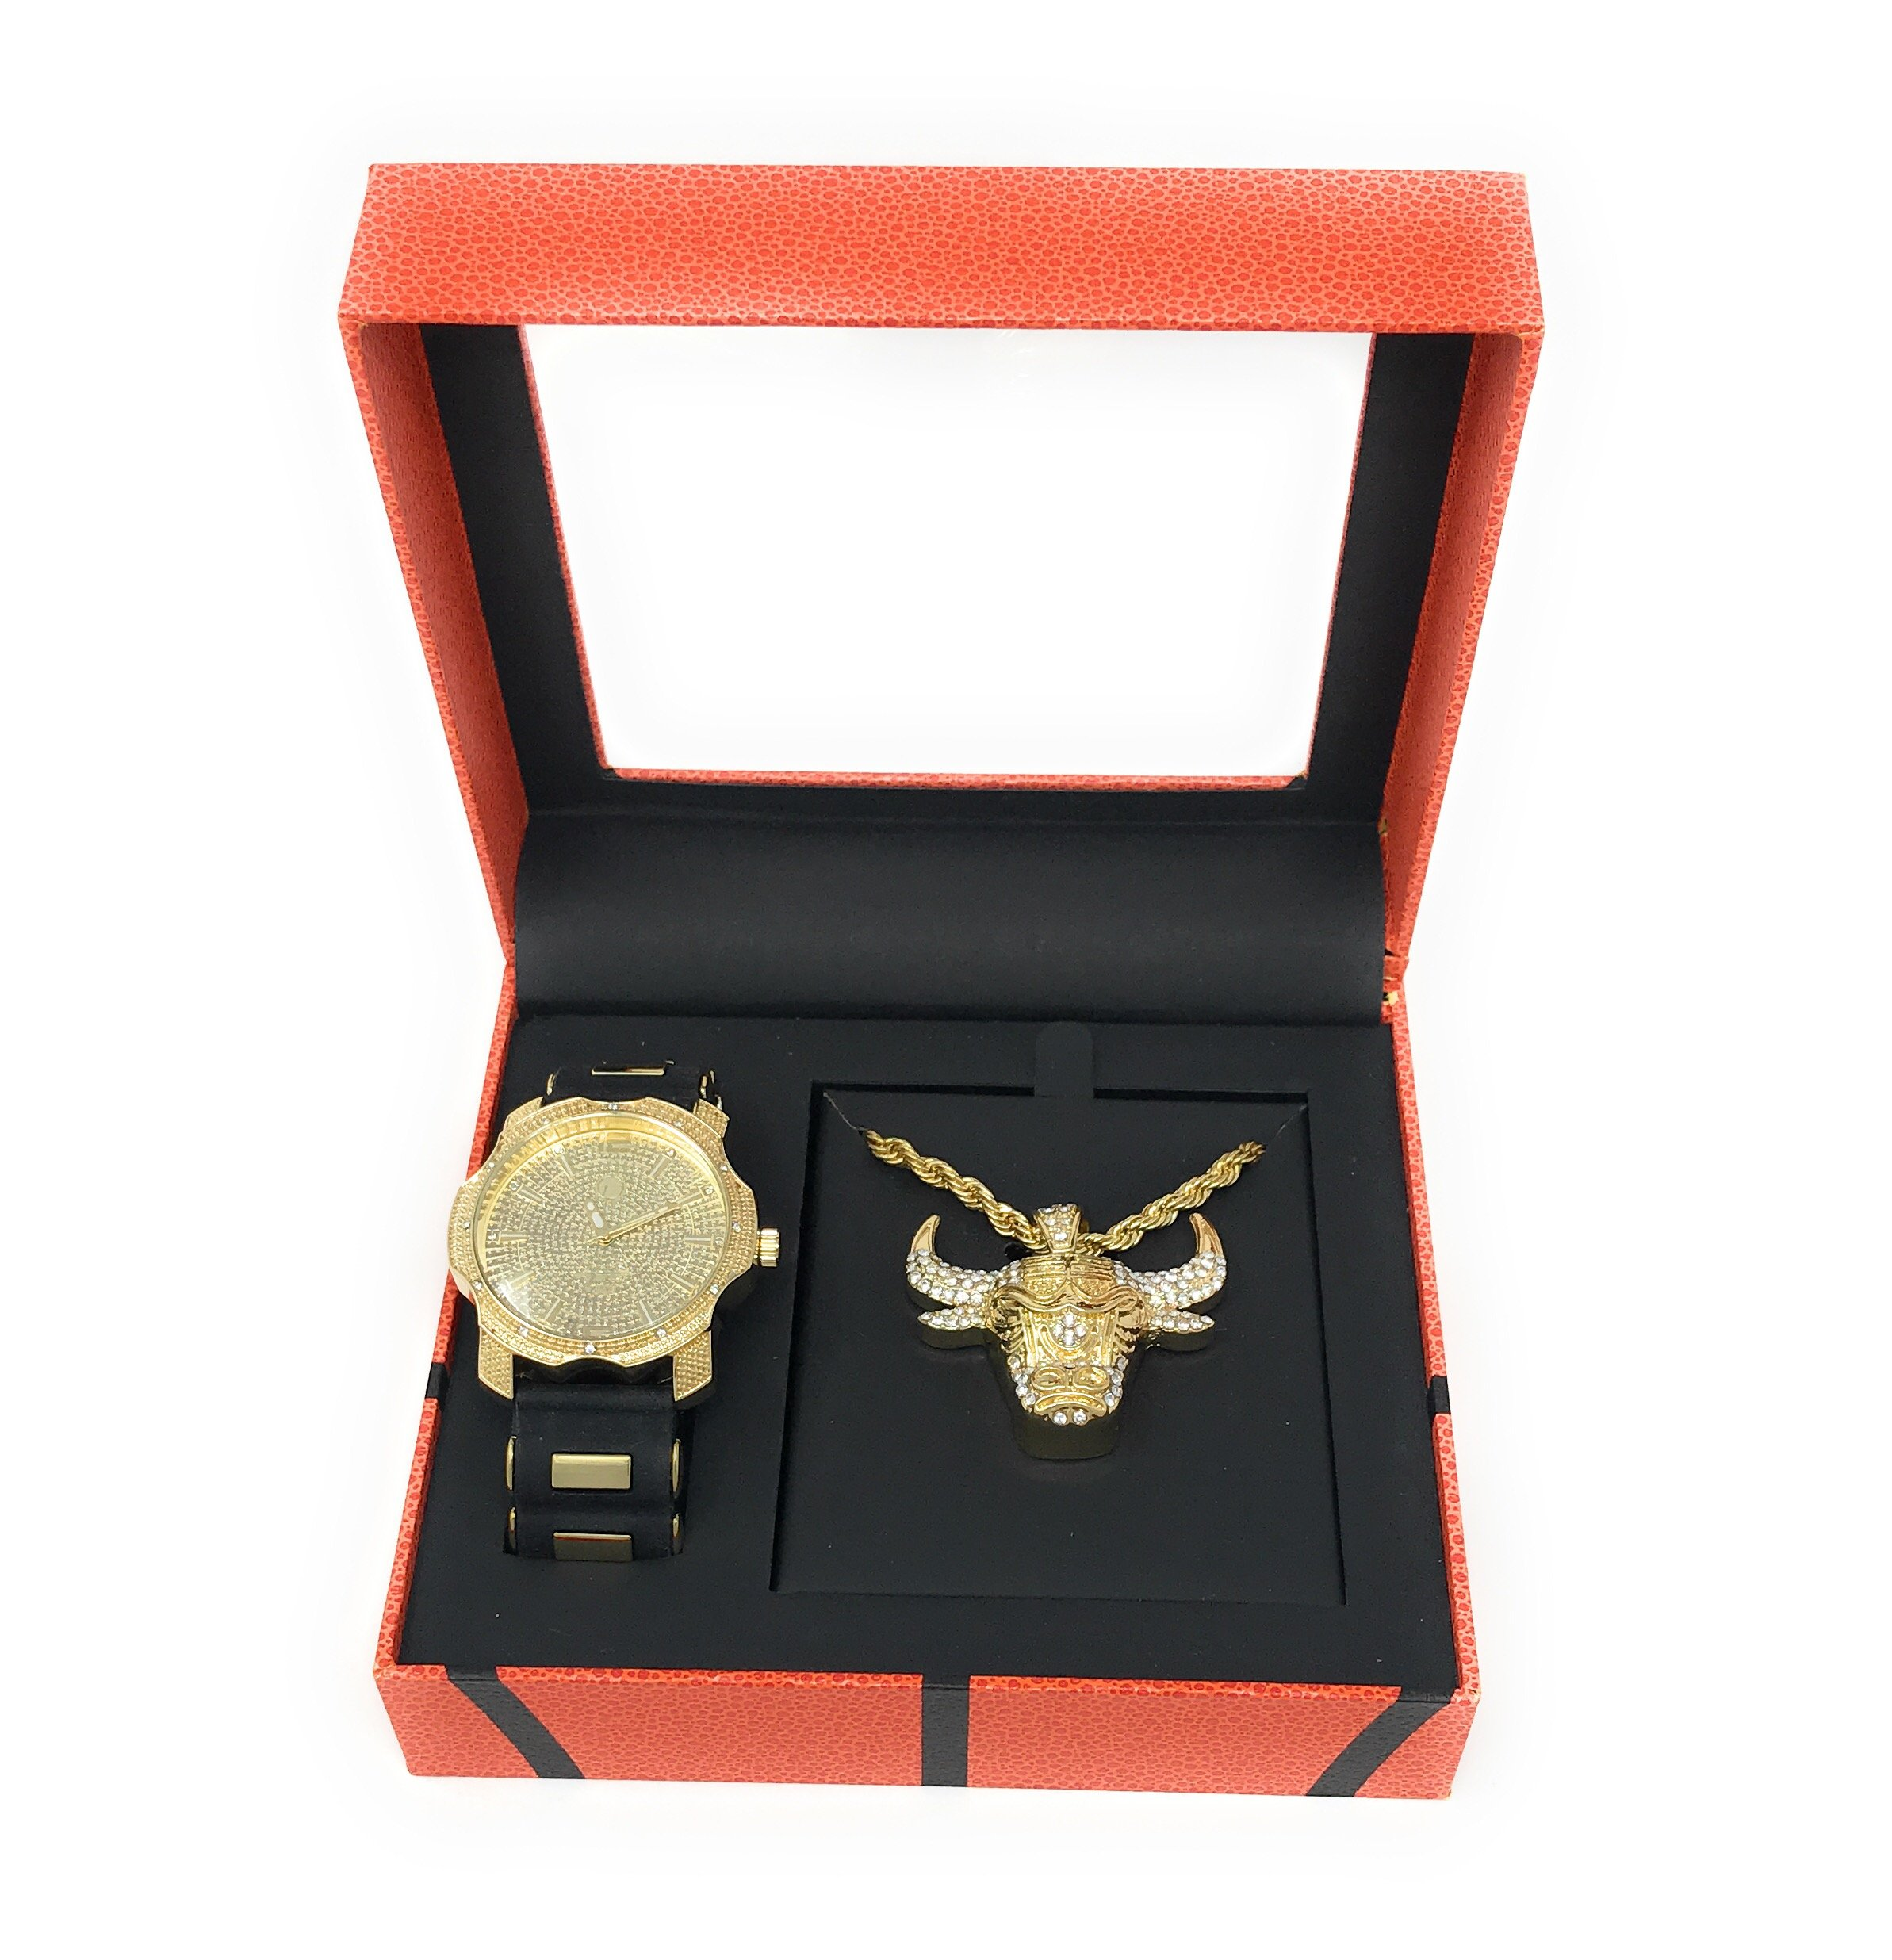 Men's Hip Hop Gold Watch and Iced Out Bulls Basketball Pendant on Gold Rope Chain Gift Set